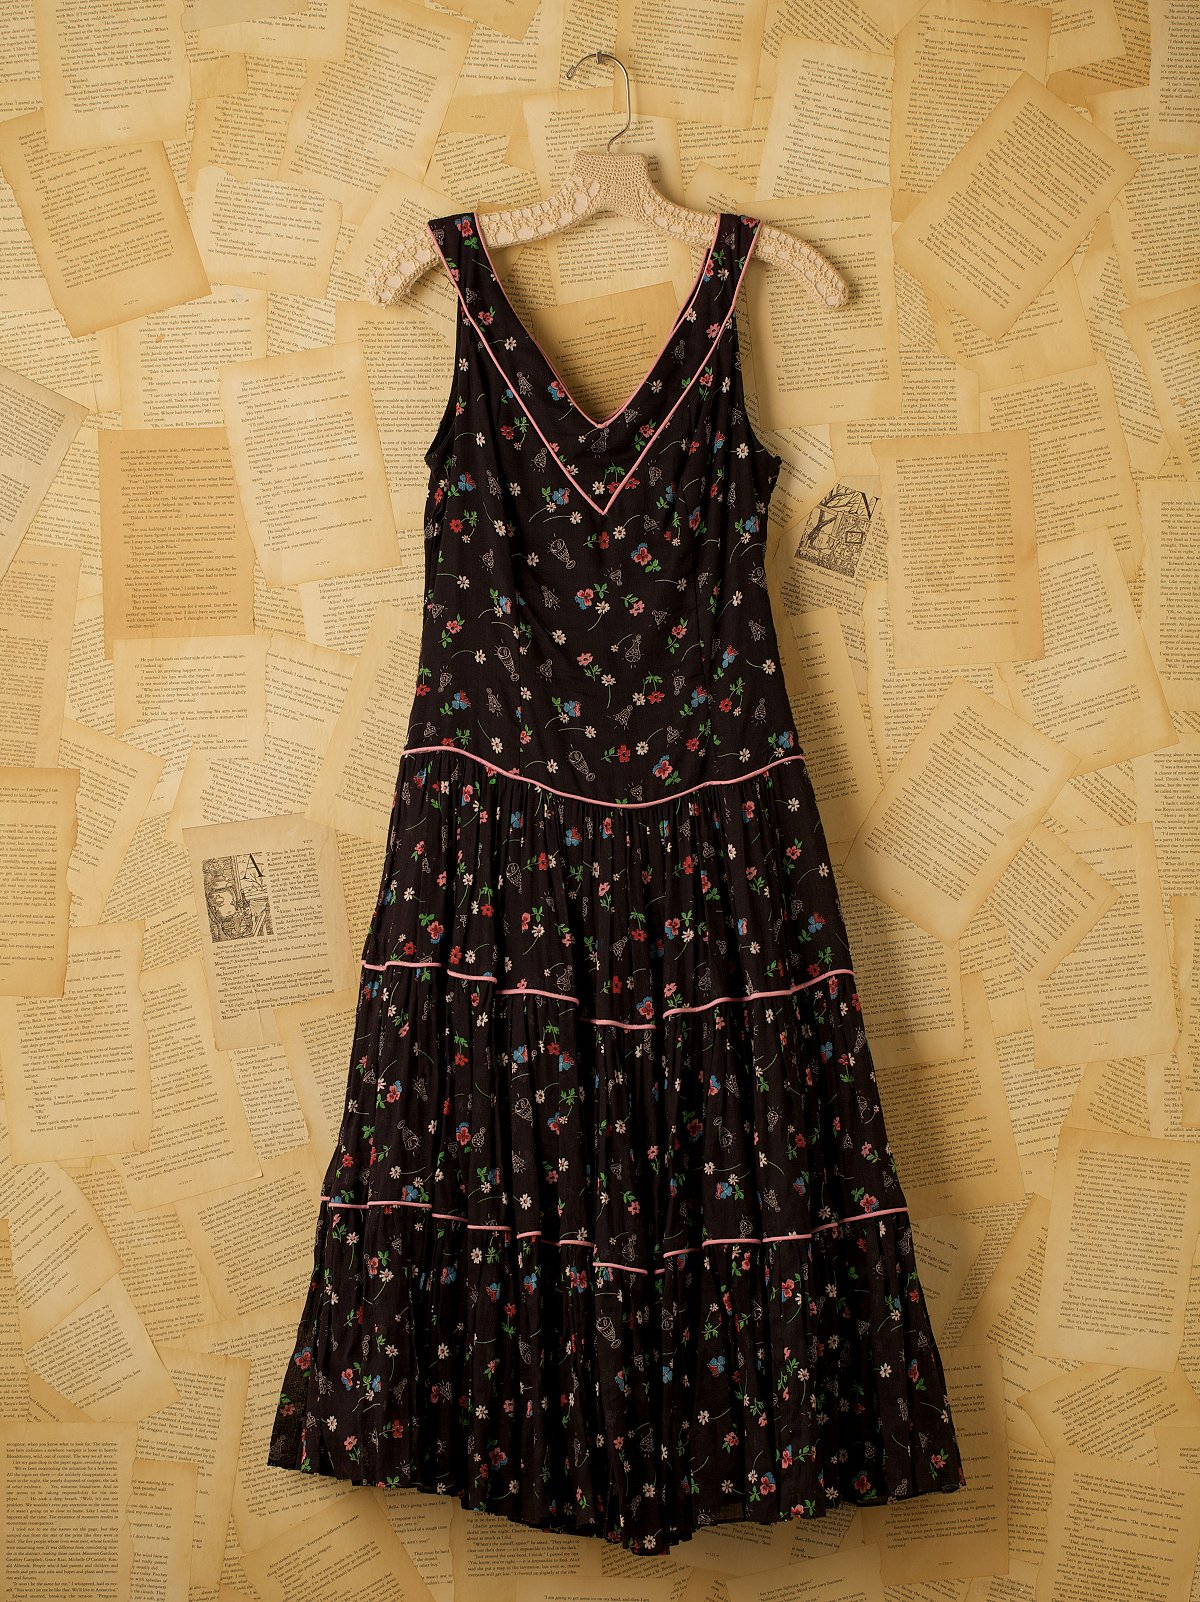 Vintage Black Jackie Morgan Dress with Flower Print